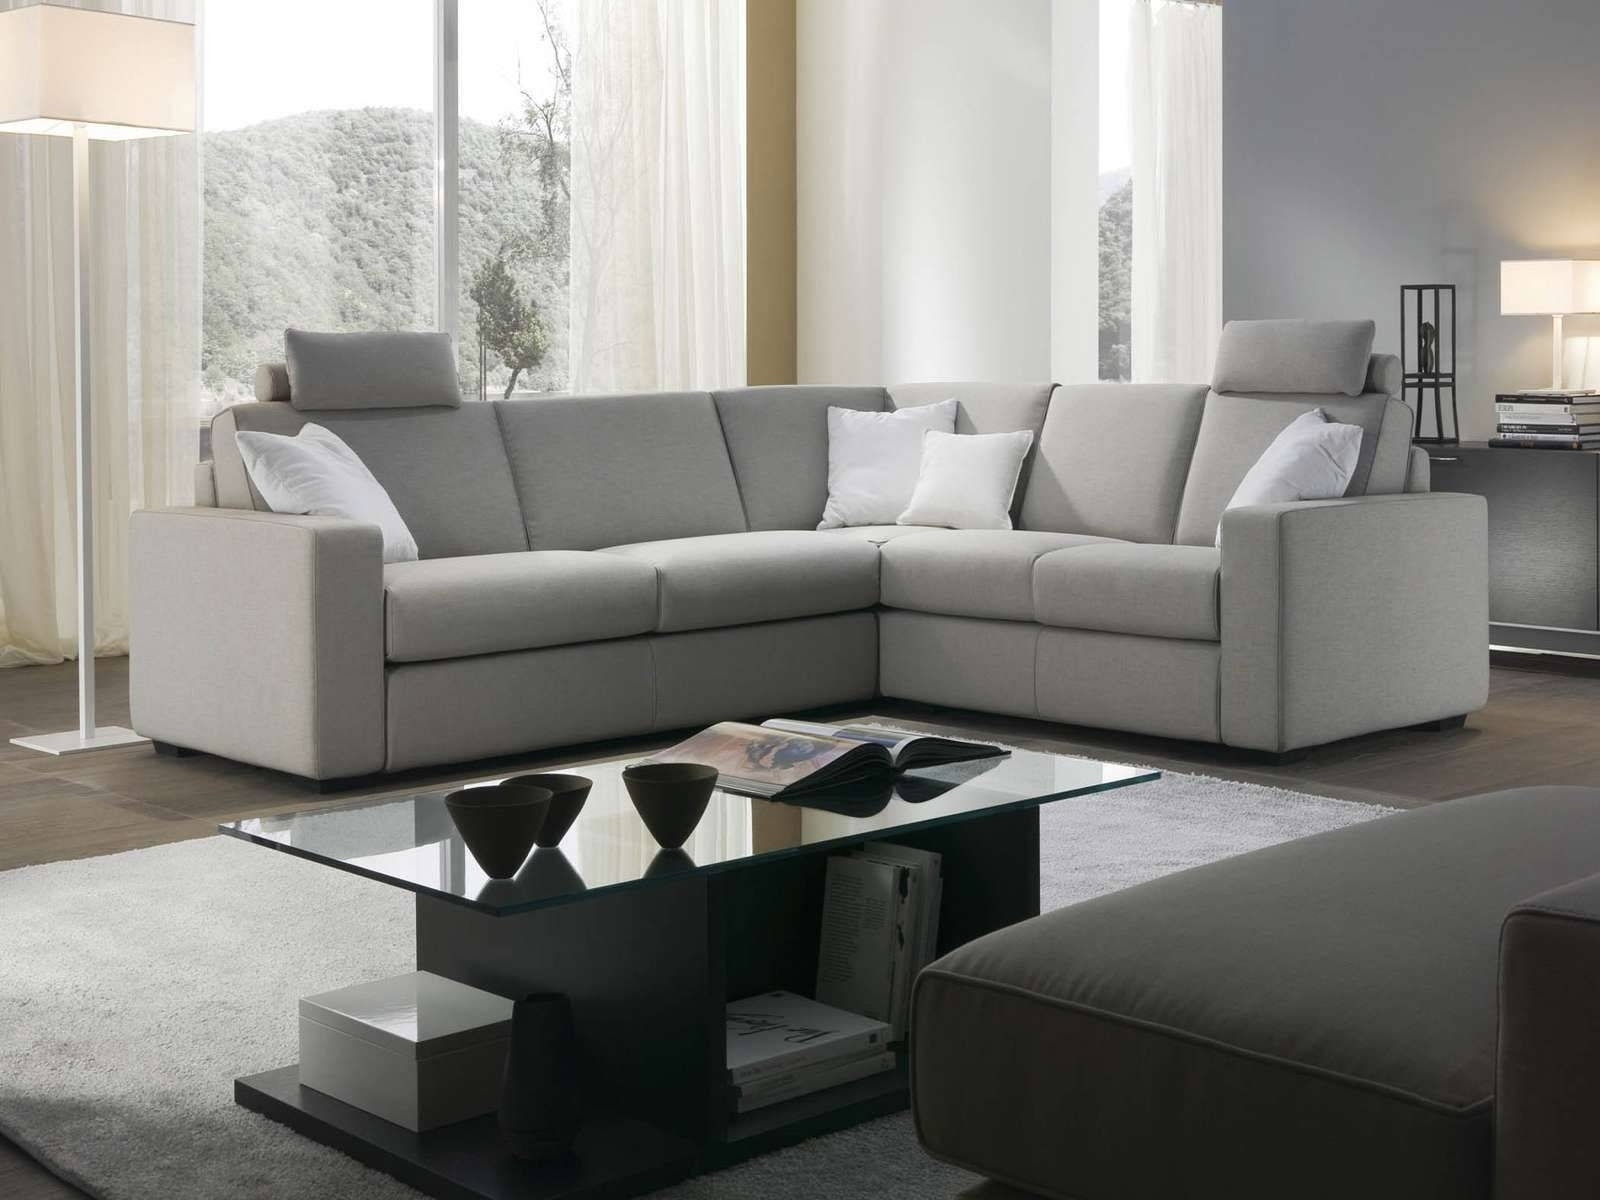 Featured Photo of Divani Chateau D'ax Leather Sofas